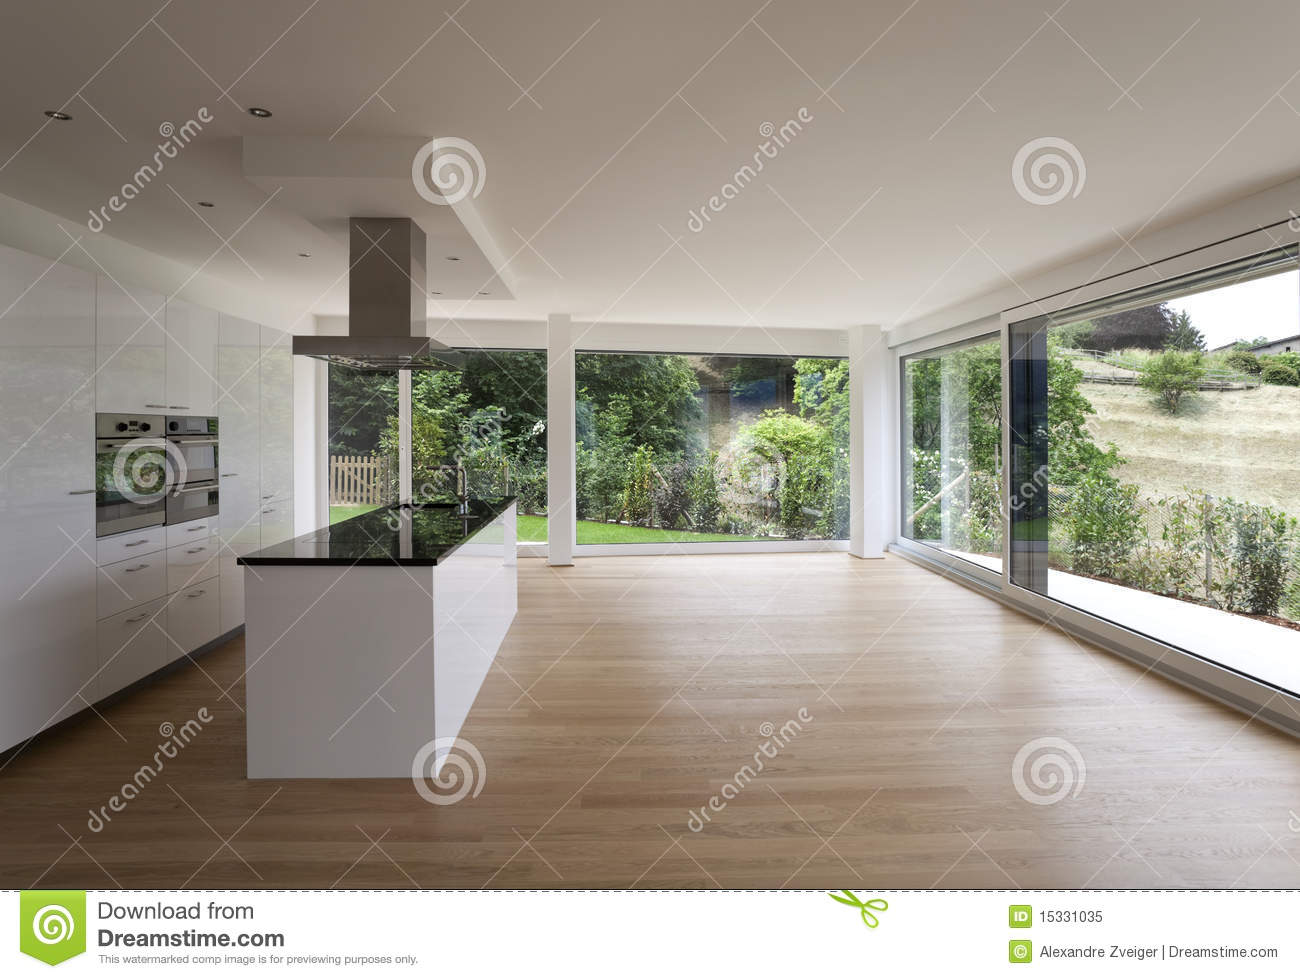 Bel int rieur d 39 une maison moderne photo libre de droits for Decoration interieur de maison moderne